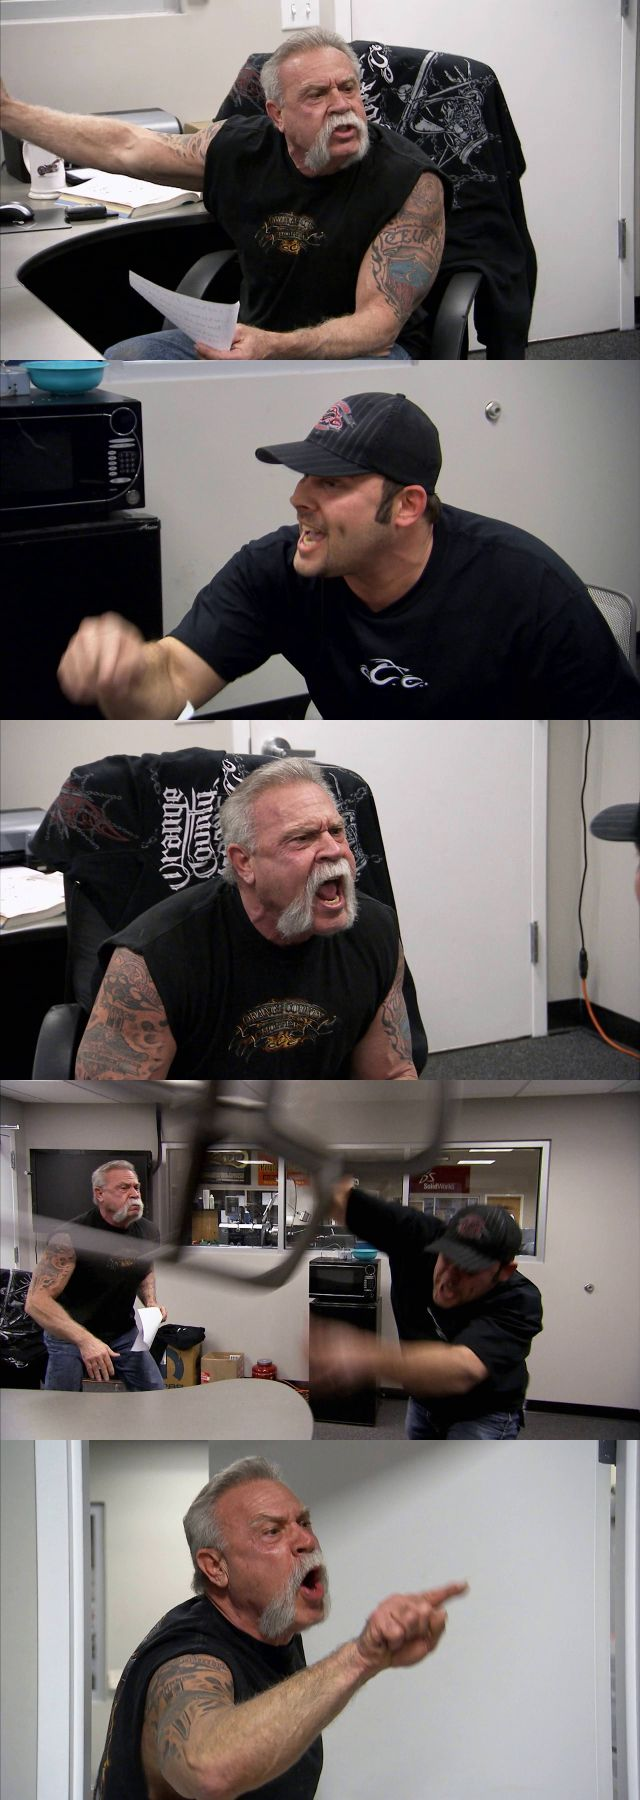 American Chopper Argument Blank Meme Template